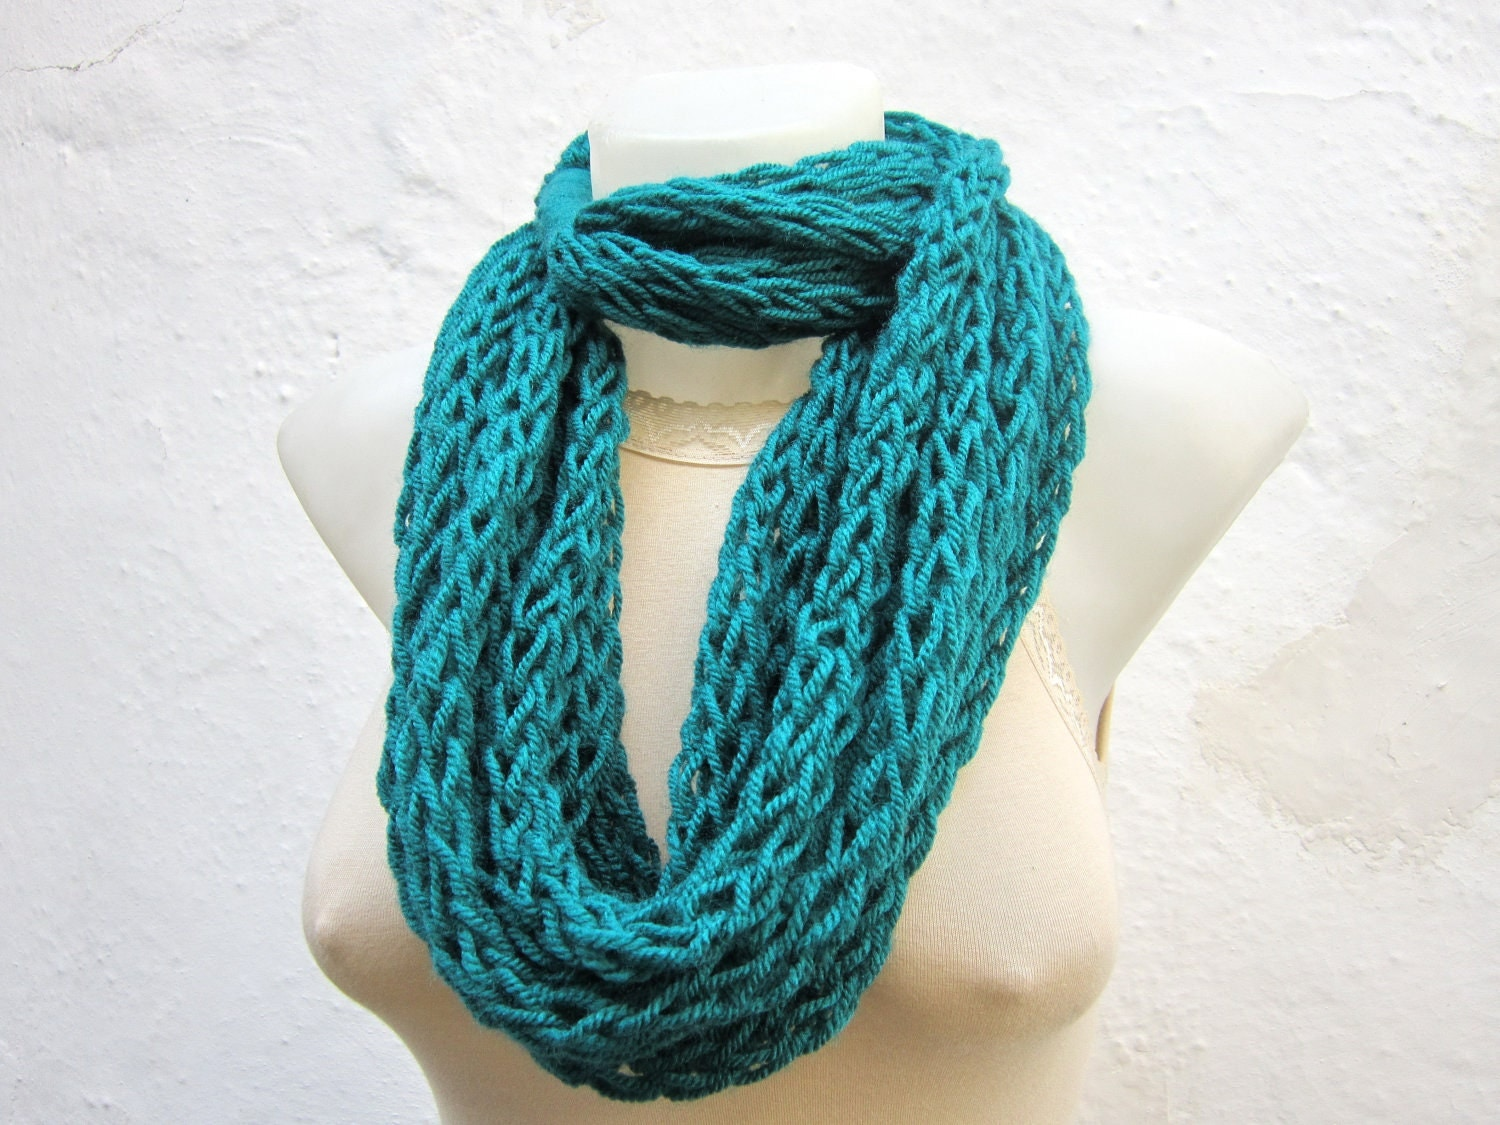 Finger Knitting Scarves : Infinity scarf finger knitting teal necklace by